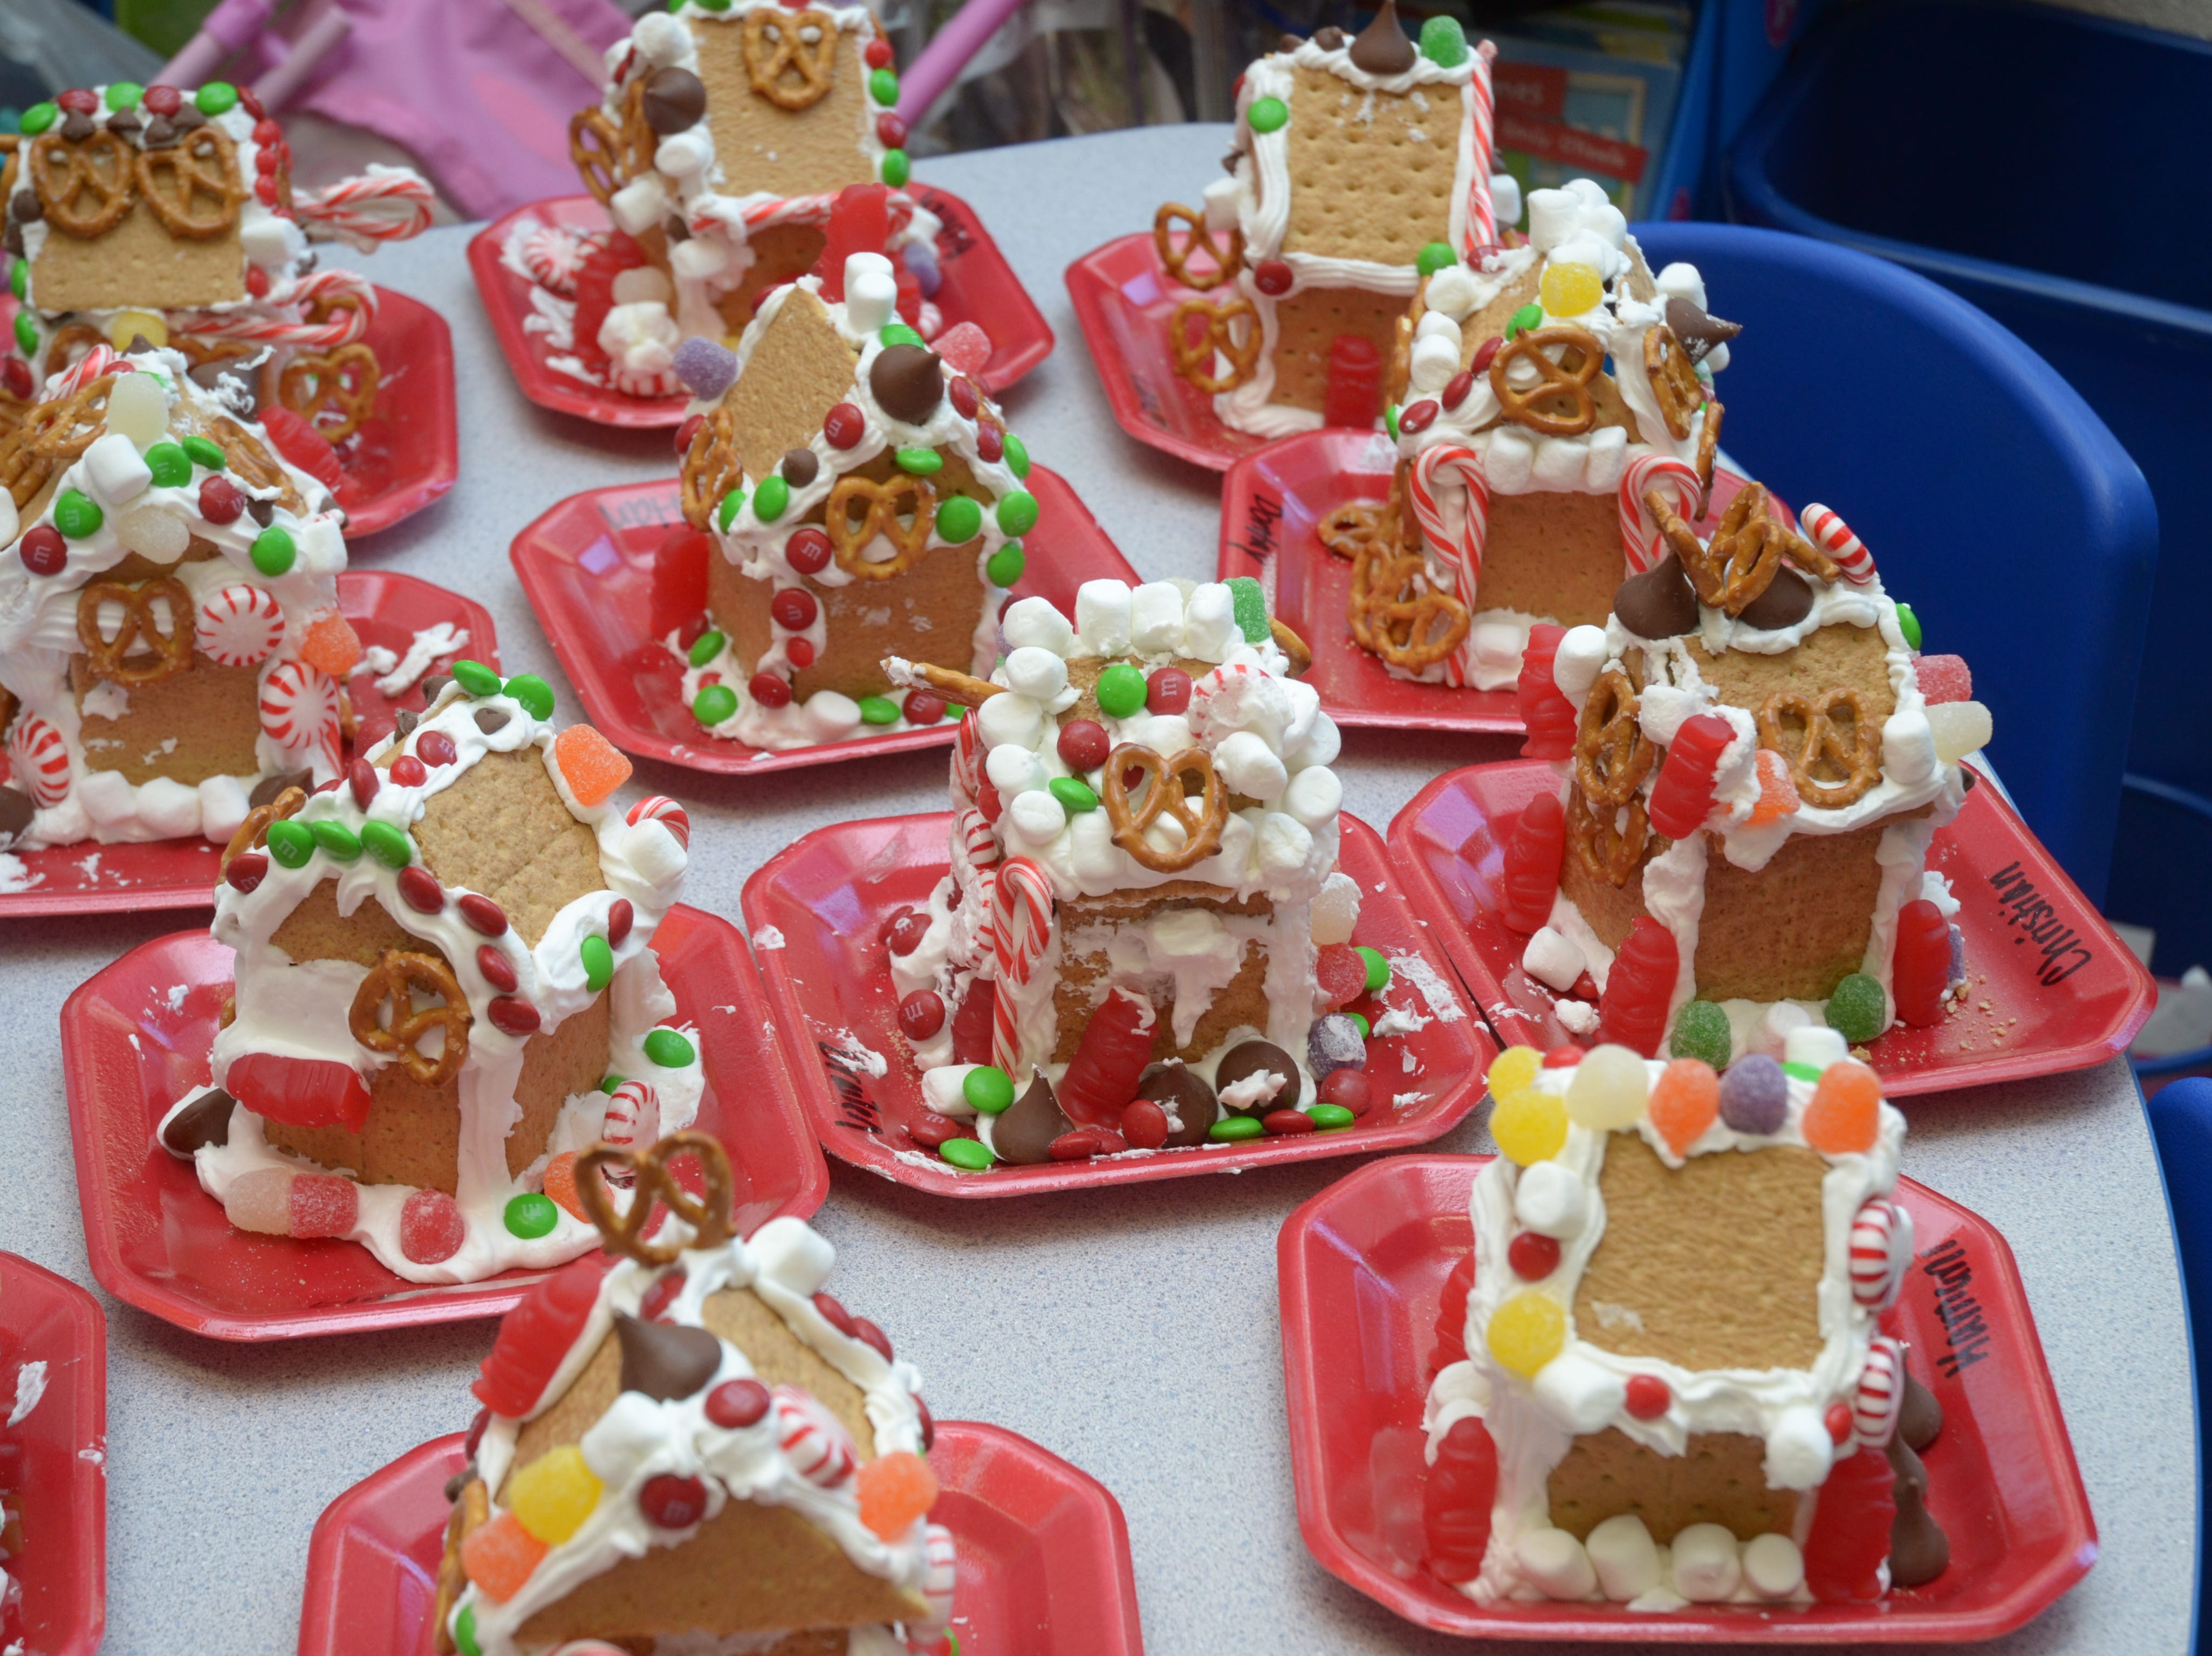 Gingerbread House Day is observed annually on Dec. 12. An Armenian monk, Gregory of Nicopolis, brought his favorite food, gingerbread, to Europe around 992 AD. These gingerbread houses were created in a kindergarten classroom at Pleasant Ridge Elementary, December 2014.